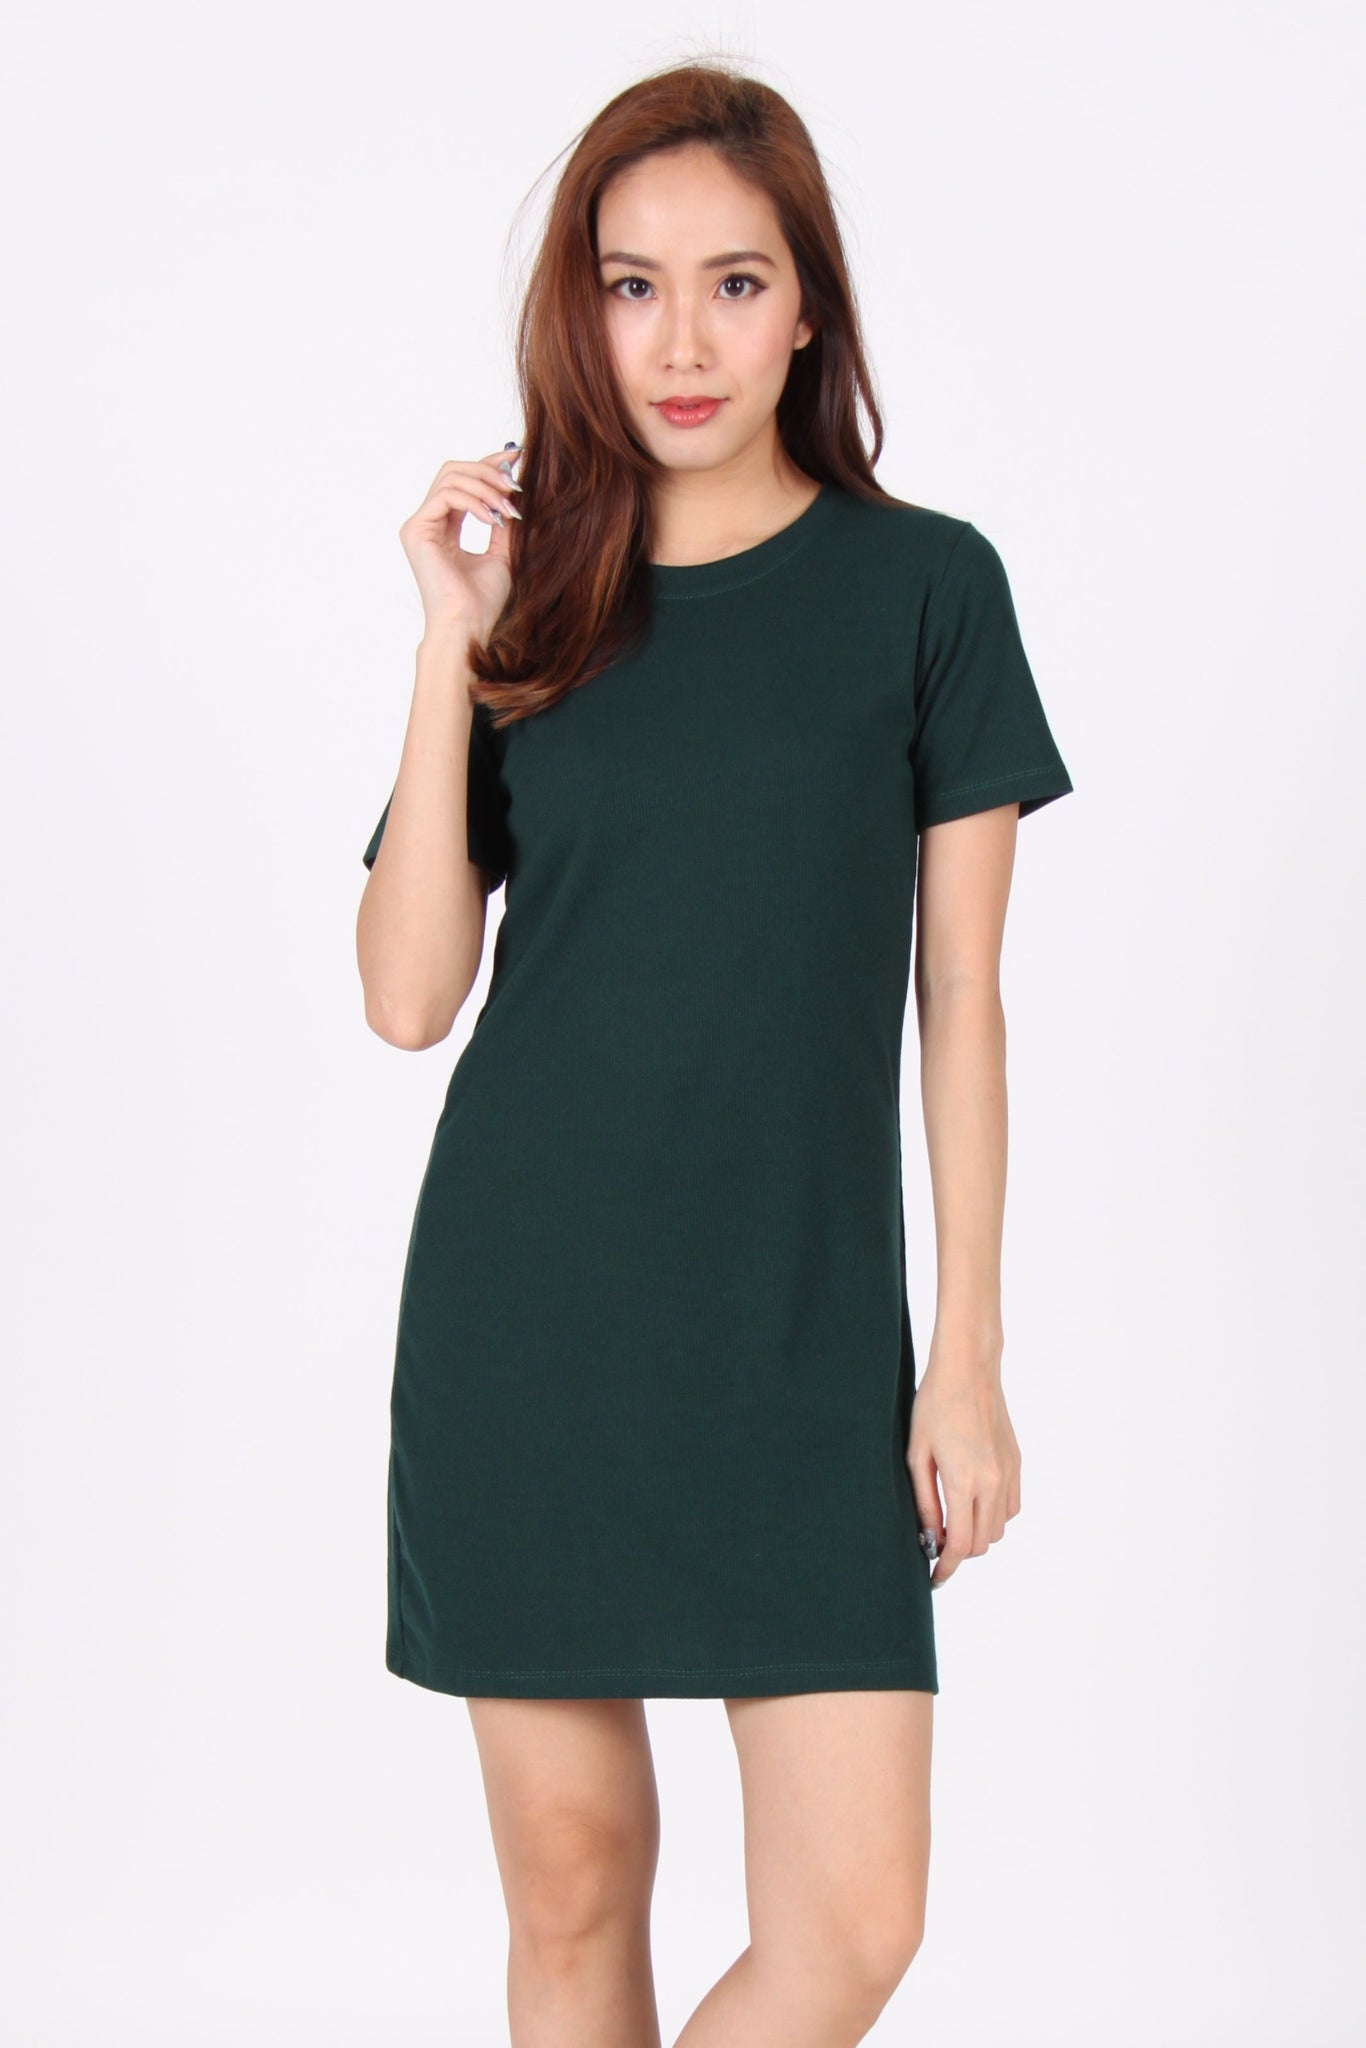 Basic Everyday Comfy Tee Dress in Dark Green